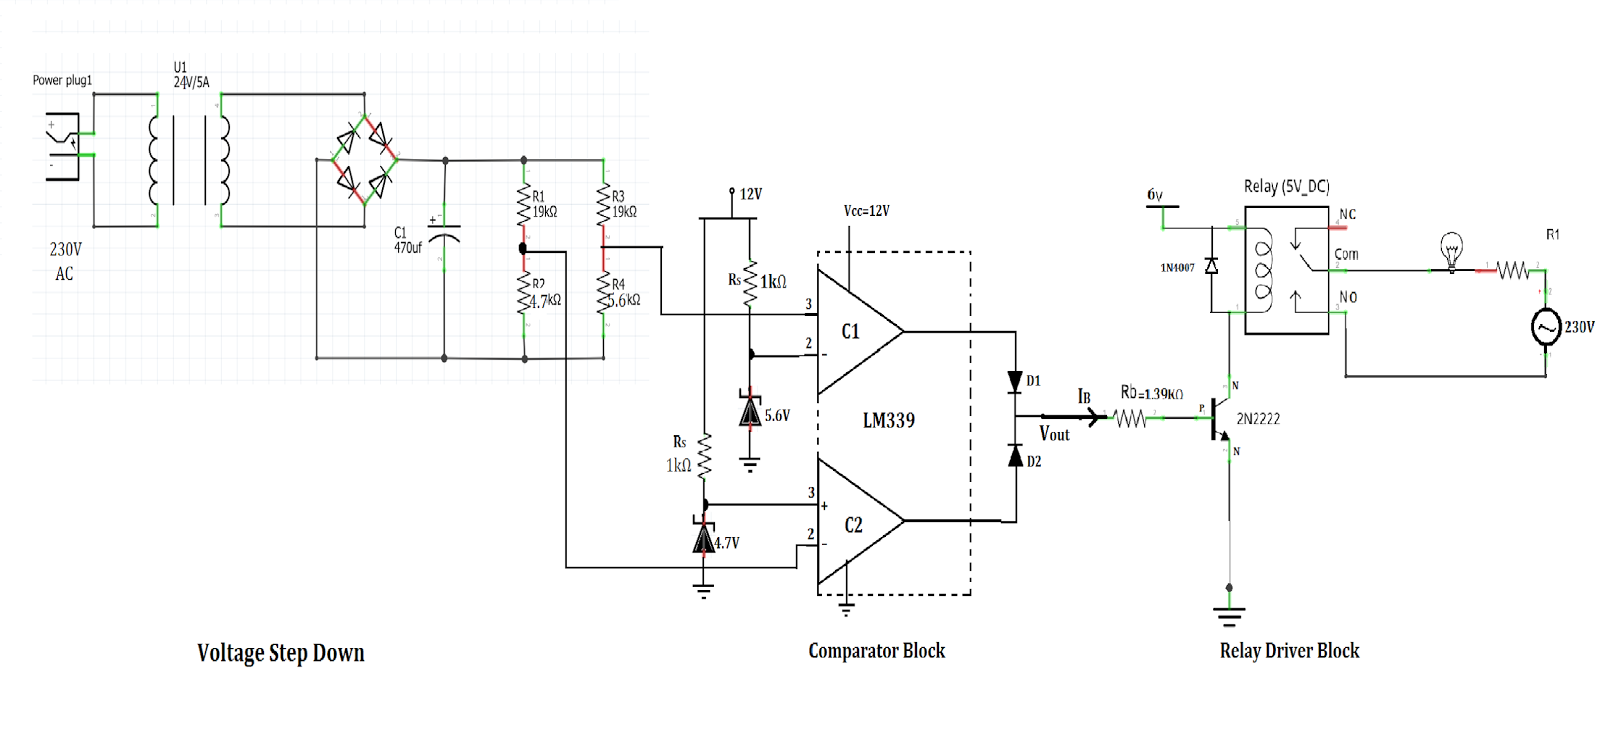 Ritvik Dave Design Over Under Voltage Protection Circuit Stabilizer Ac Short Breaker Protector Homemade Projects Still There Are Two Additional Dc Power Supplies Of 6v For Relay And 12v Comparator Ic Needed To Operate This But The Final Product